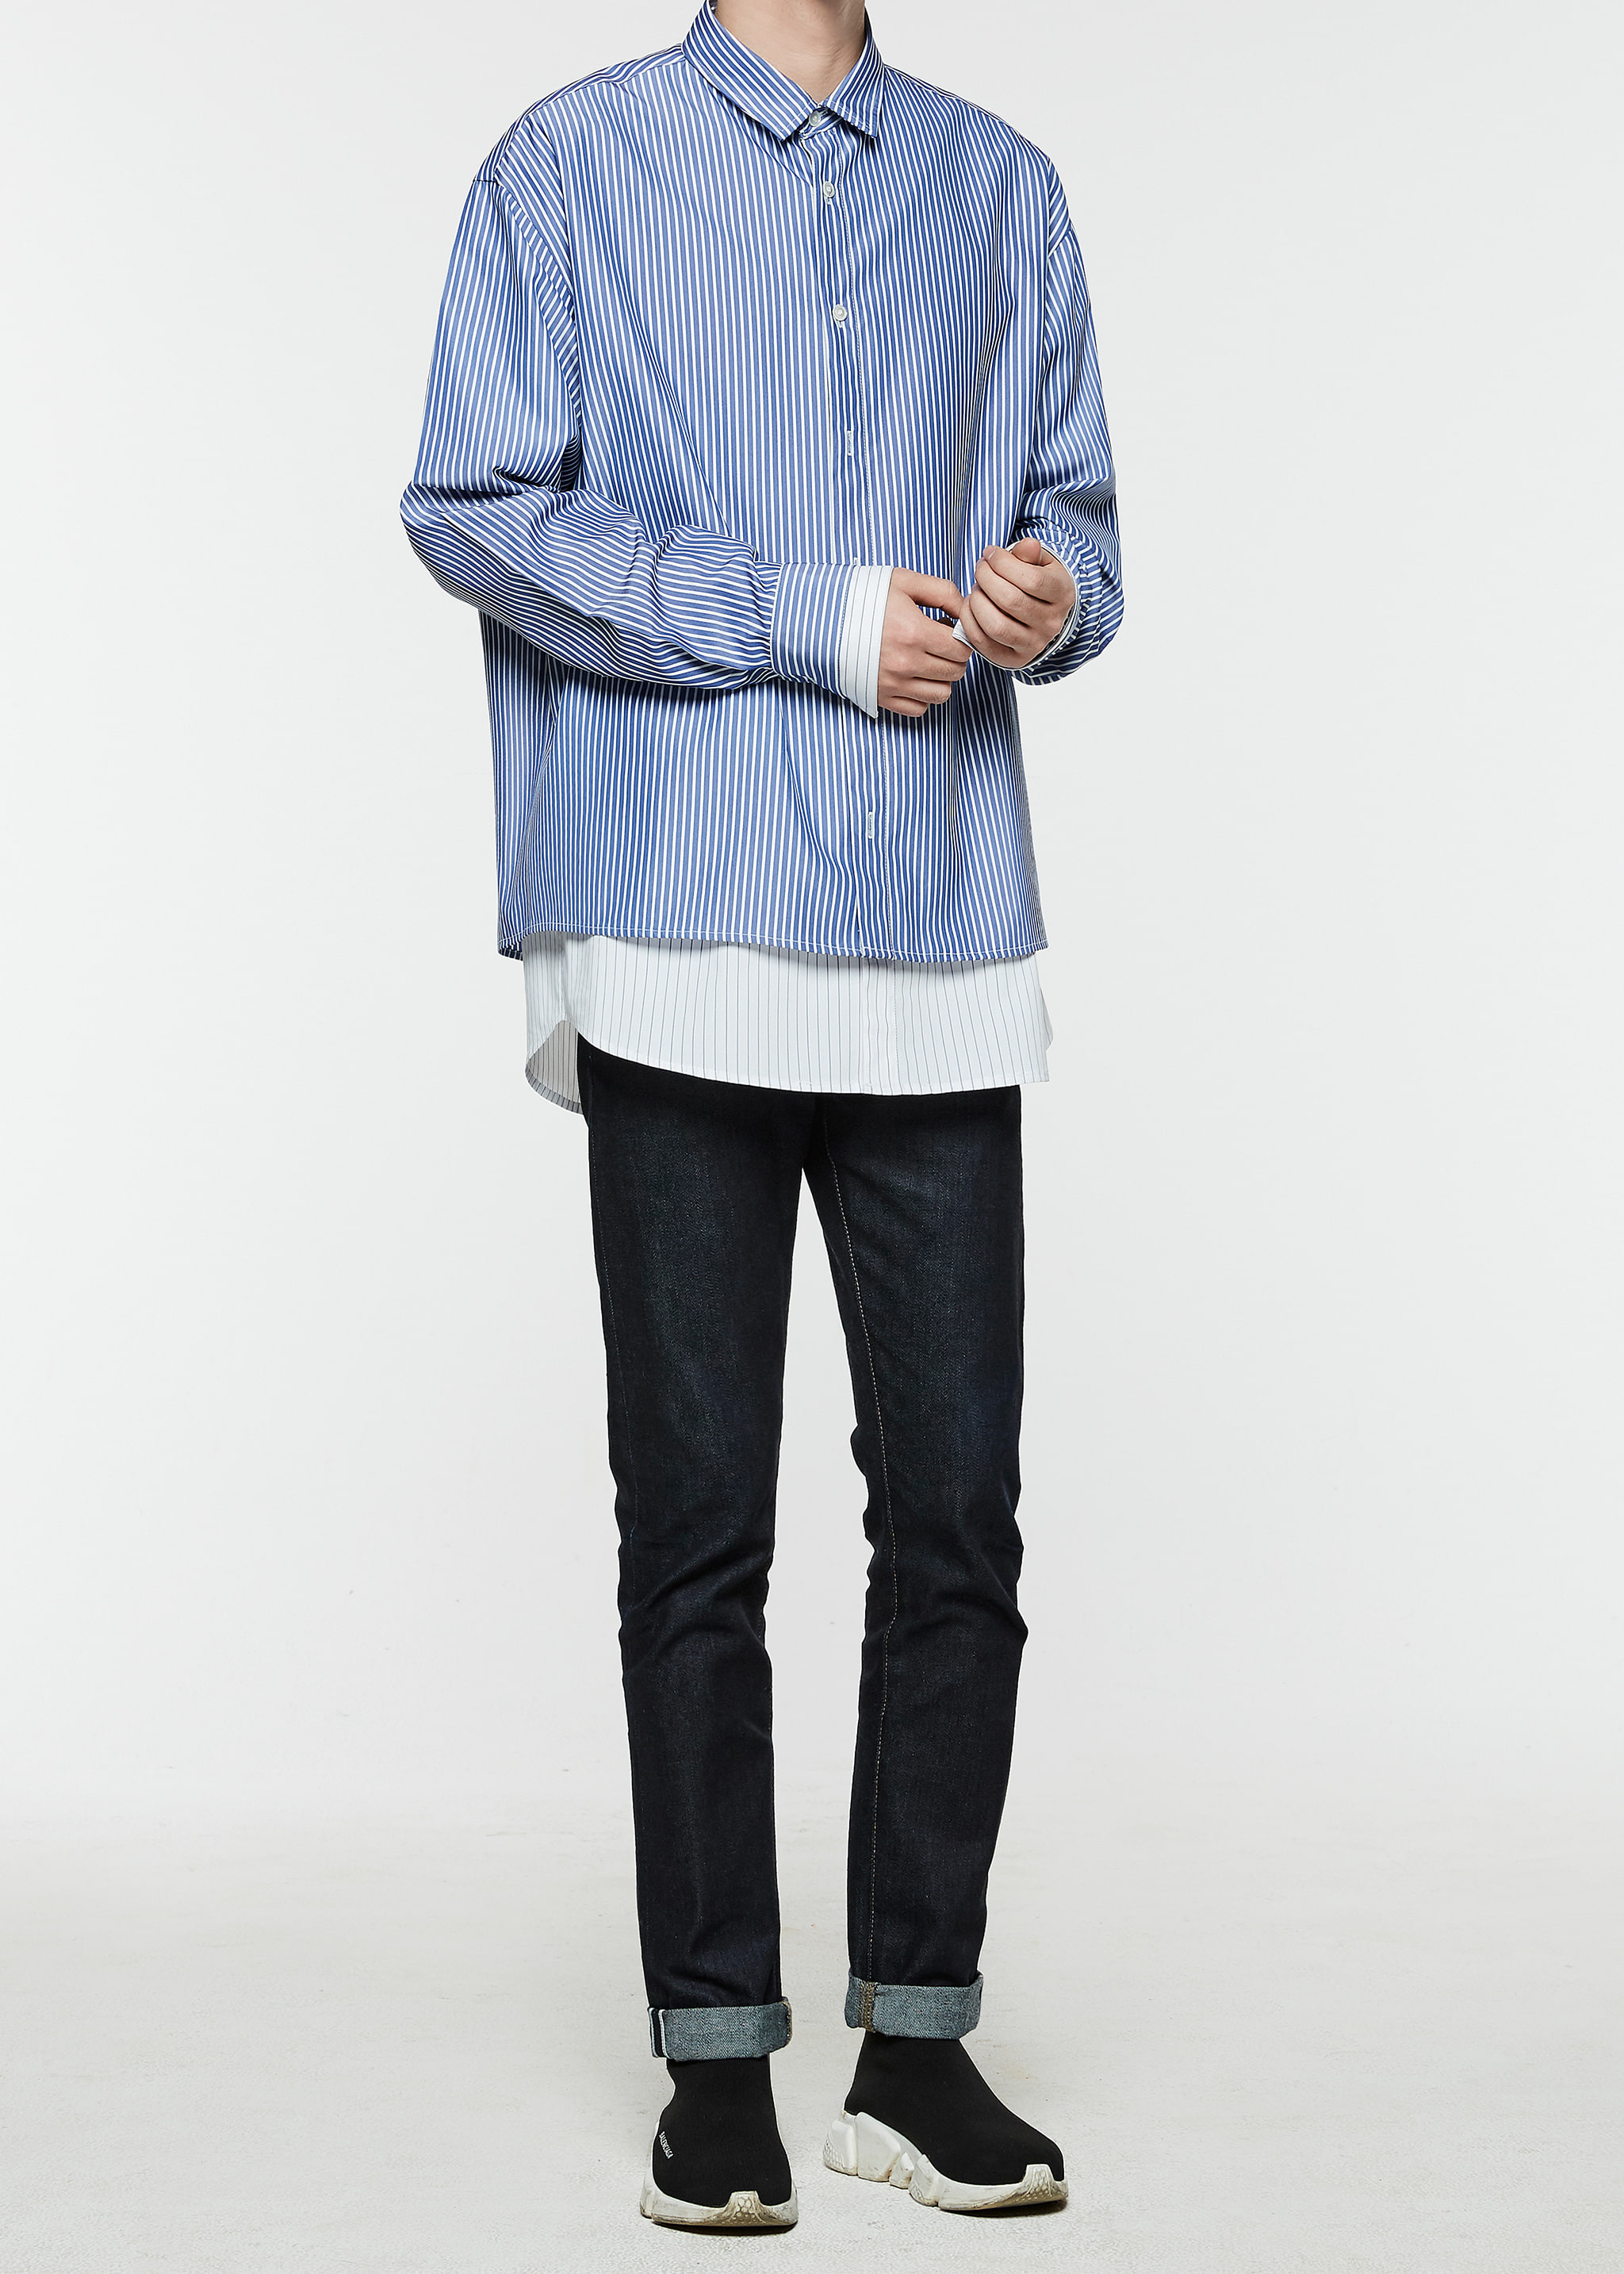 Oversize Layered Shirts (Blue)10차 재입고 완료